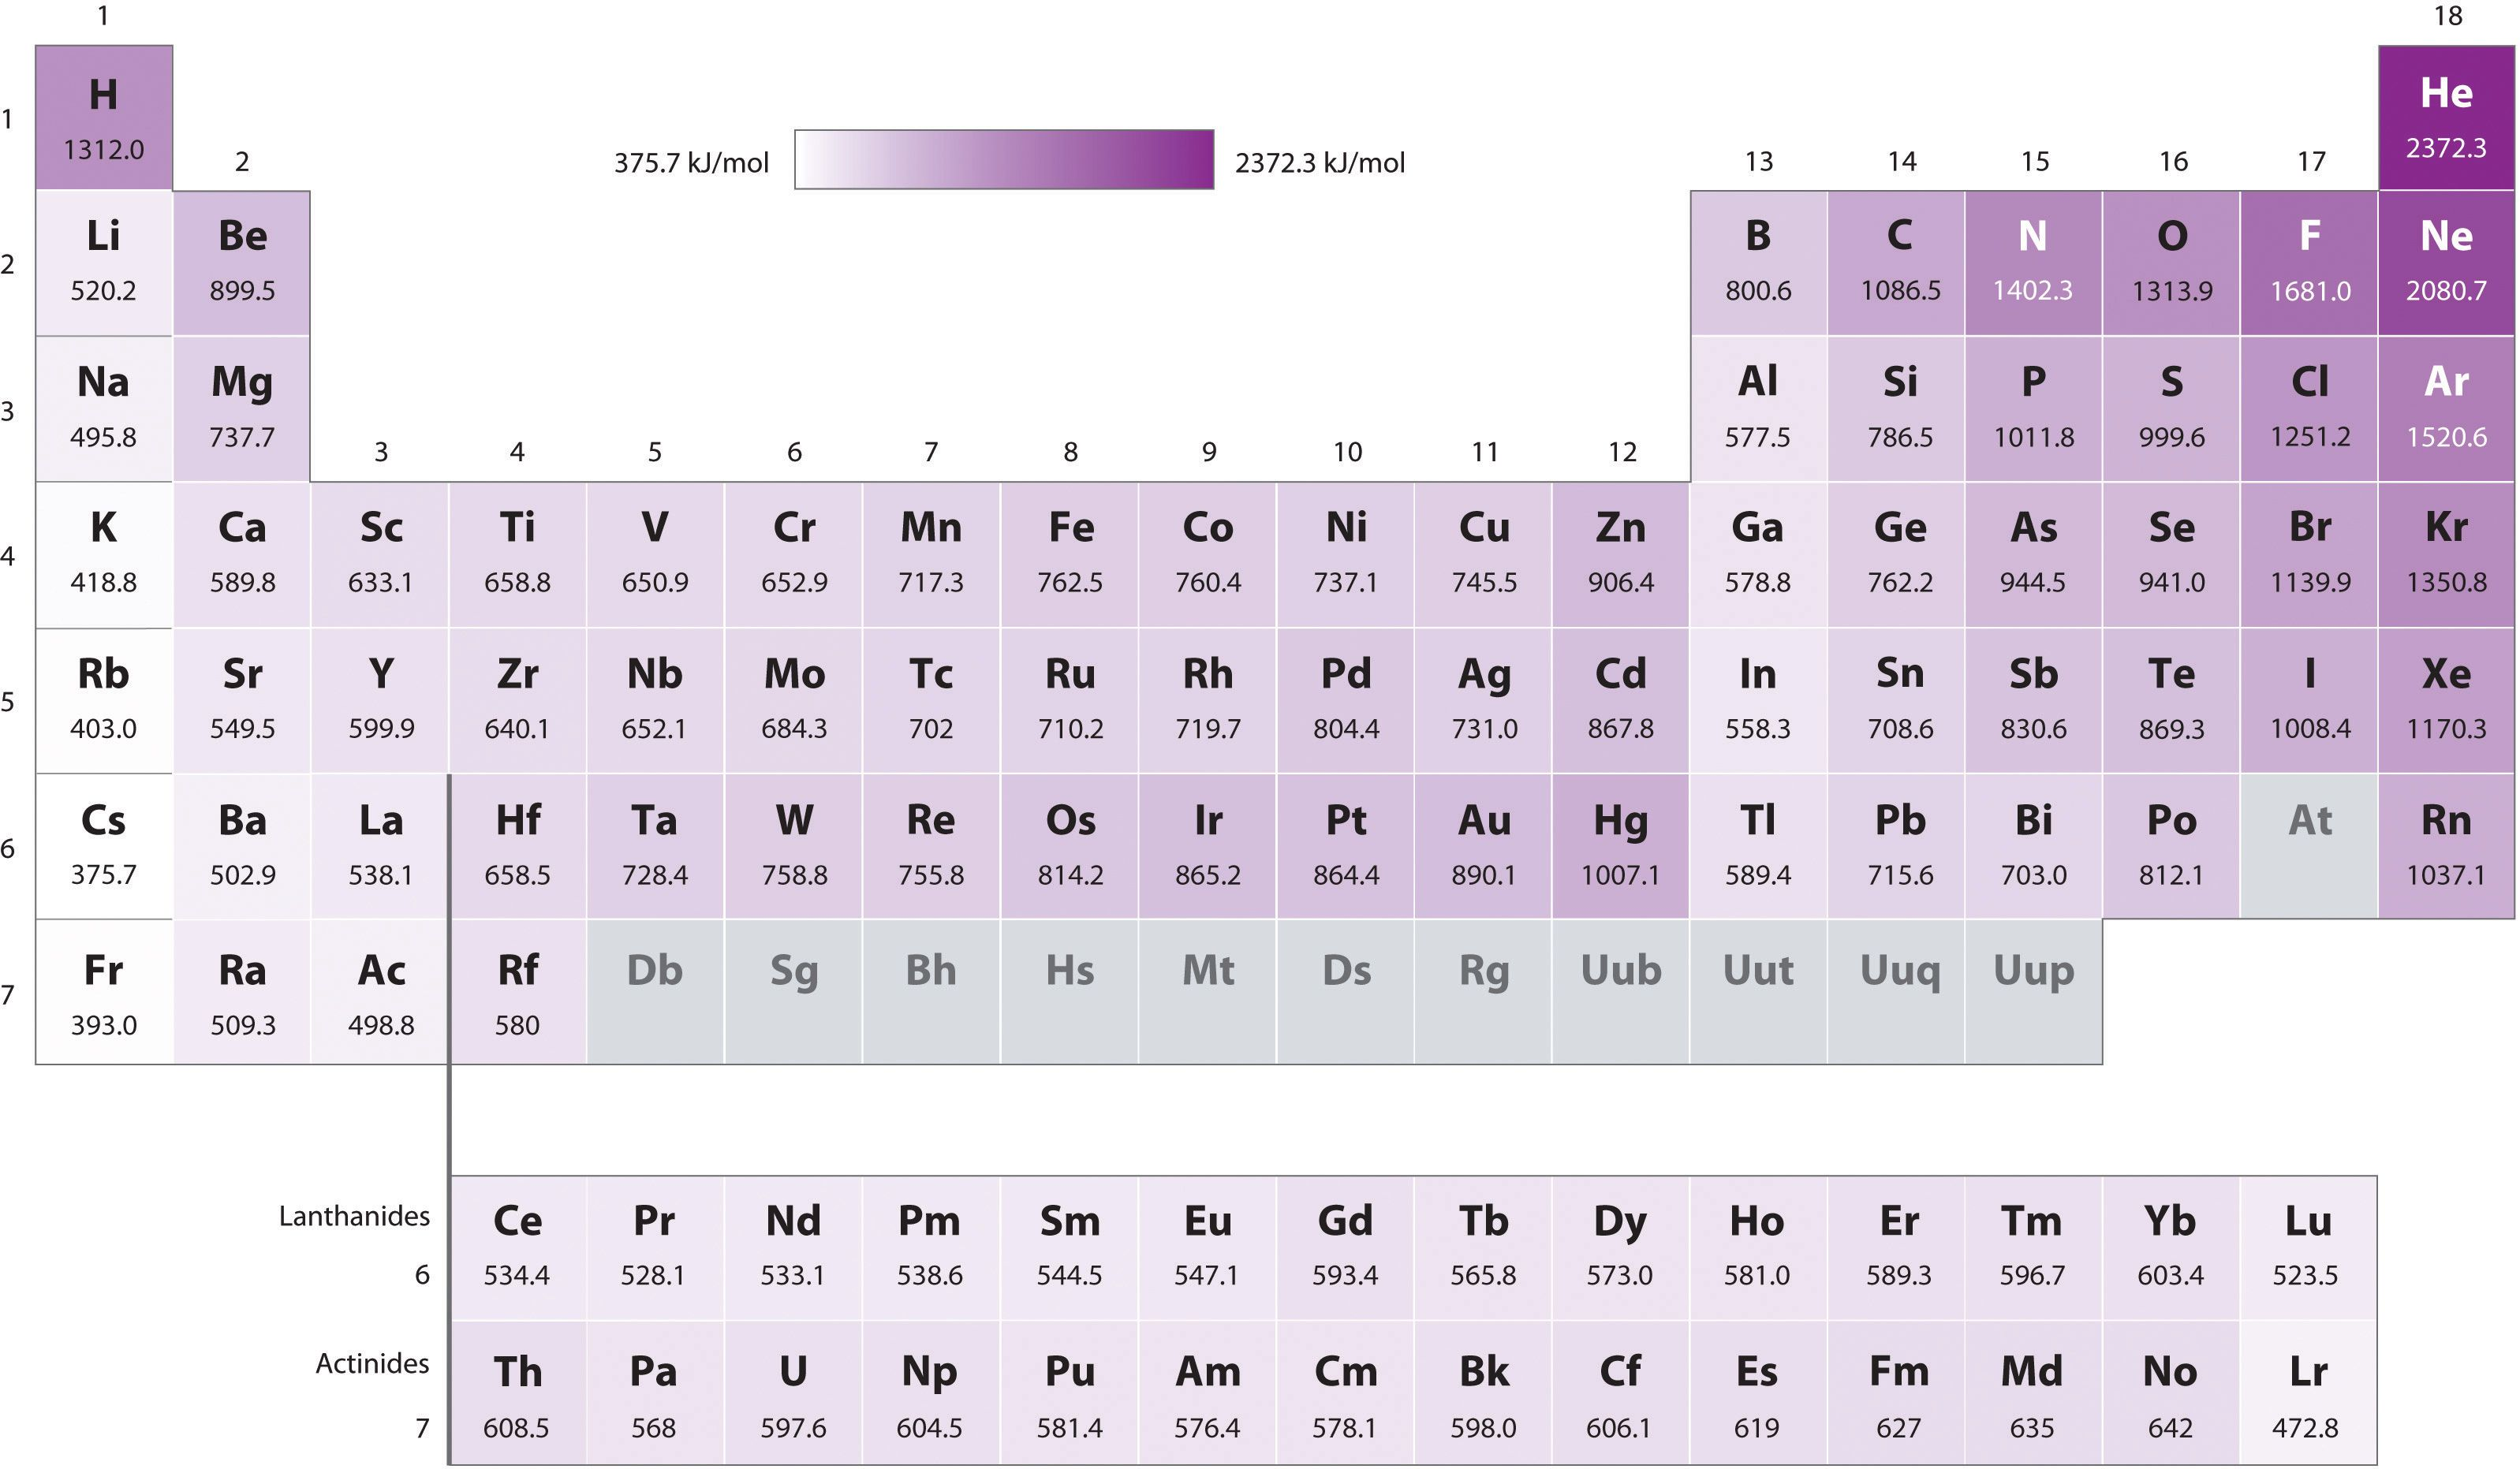 Electronegativity chart template this easytouse chart shows the ionization energy google search winterquarter urtaz